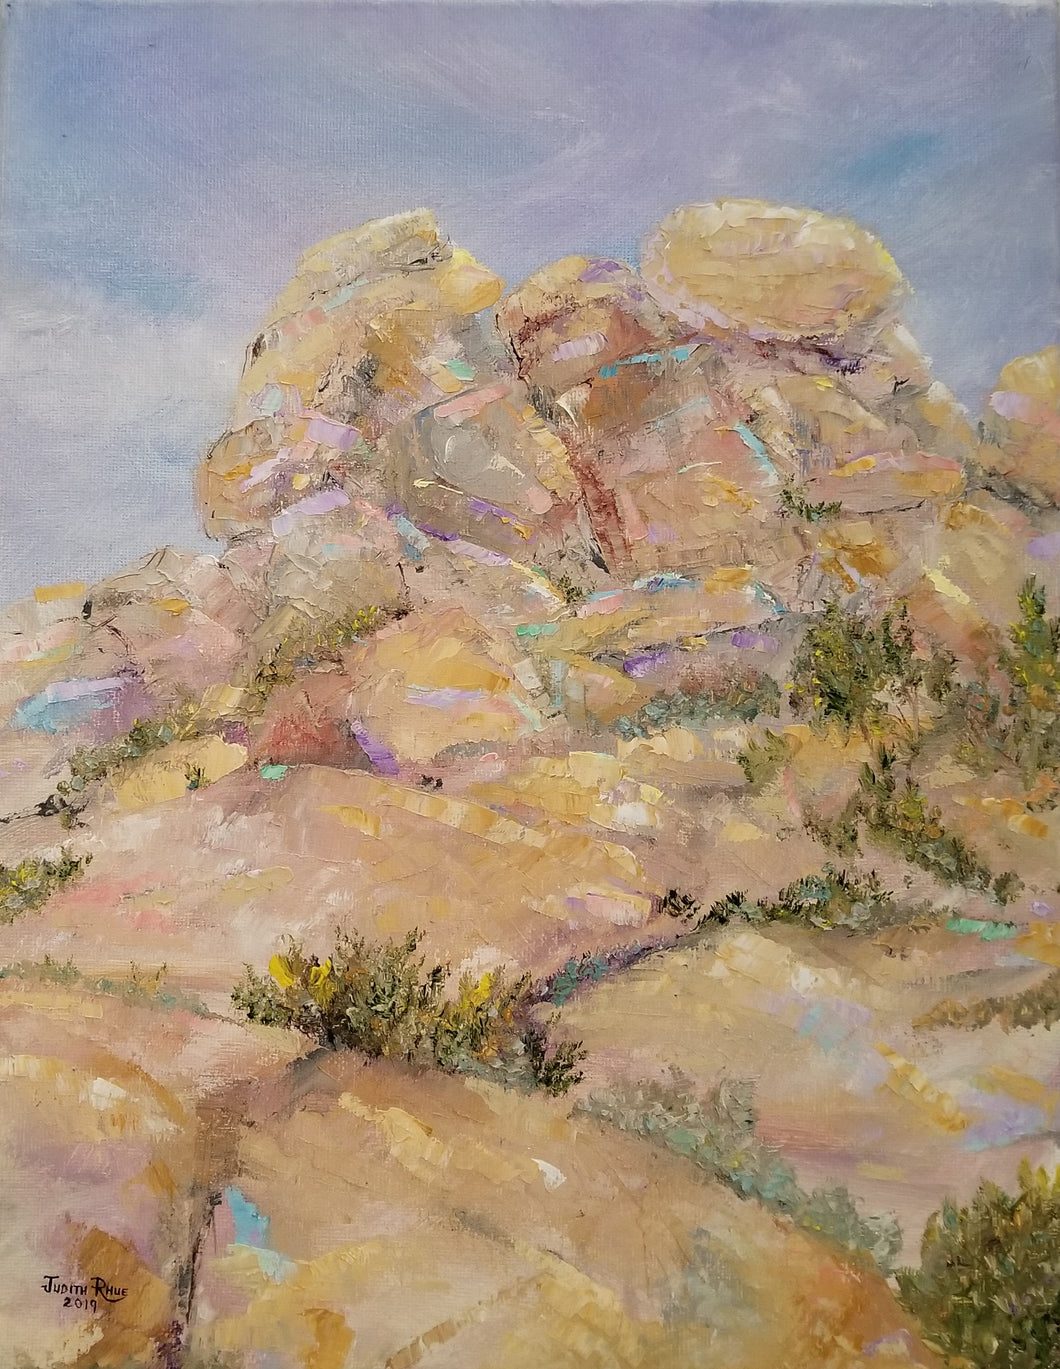 Boulders - original oil painting, landscape, rocks, boulders, boulder, rock, clouds, southwest, Arizona, southwestern, western, desert, home, wall, decor, art